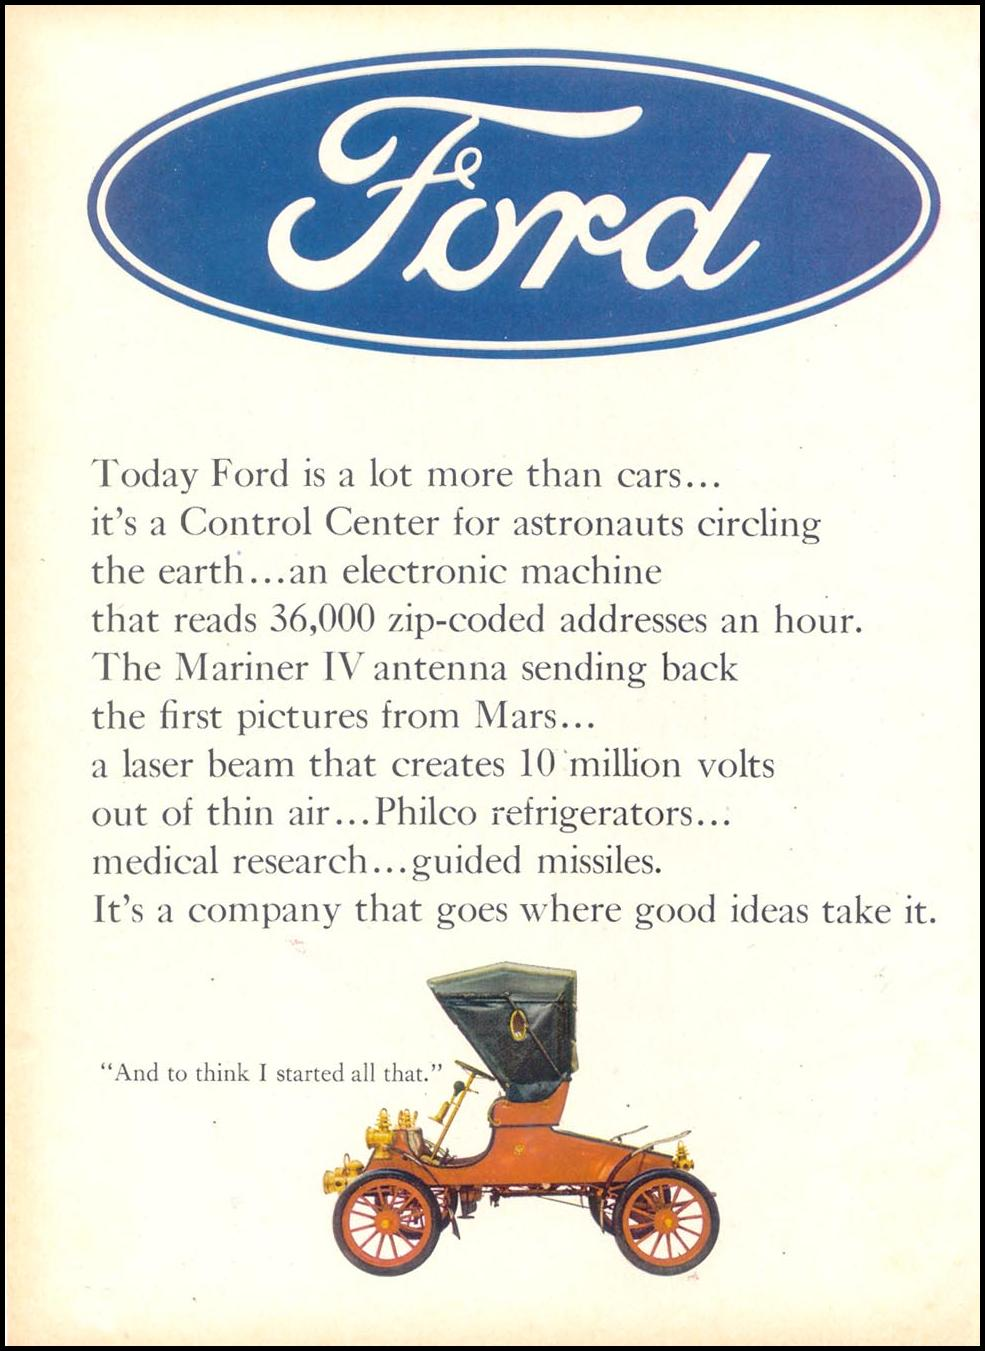 FORD AUTOMOBILES TIME 03/11/1966 p. 56